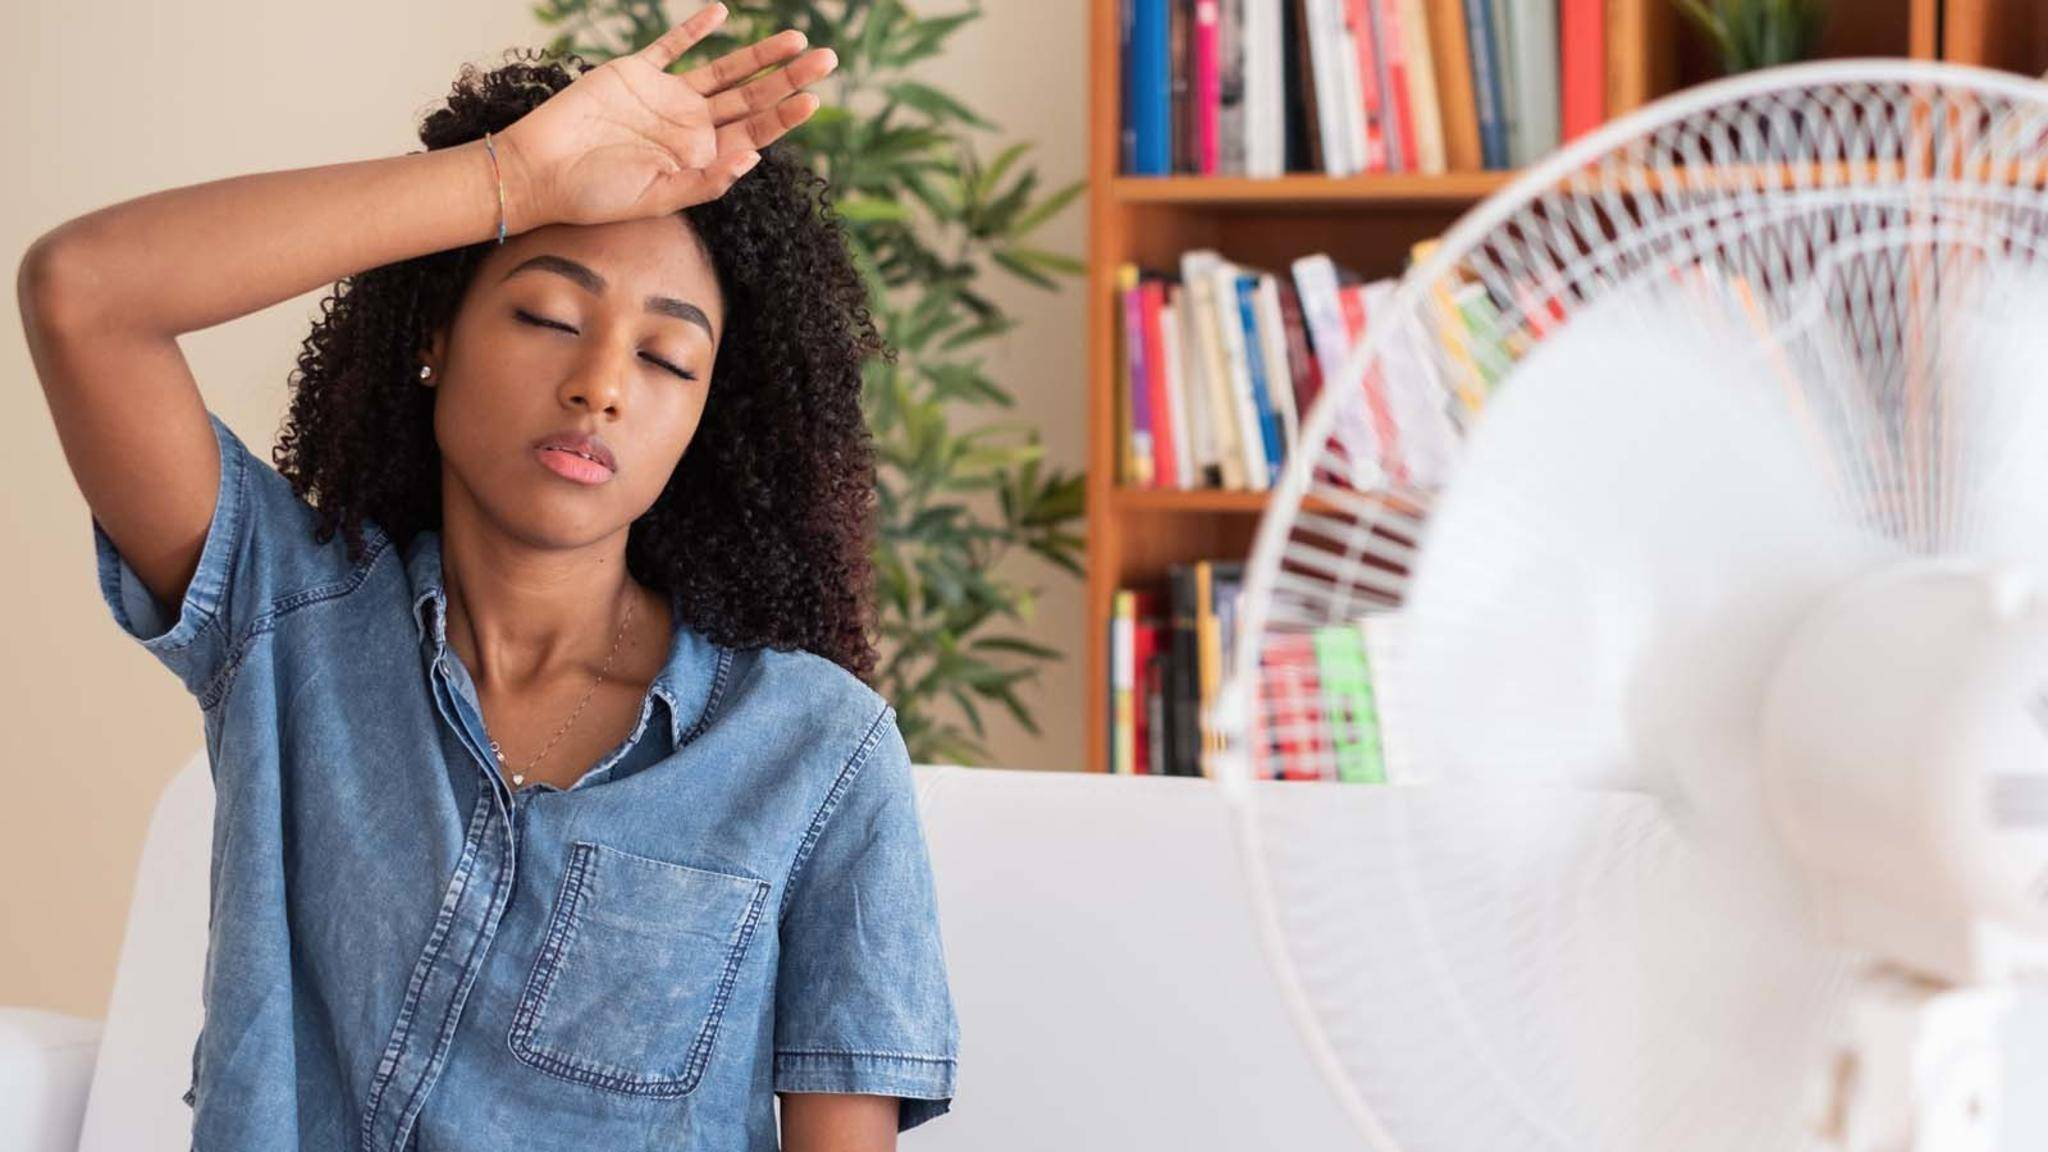 Woman refreshing in front of a fan-Ventilator-Frau-heiß-Paolese-AdobeStock_269986728